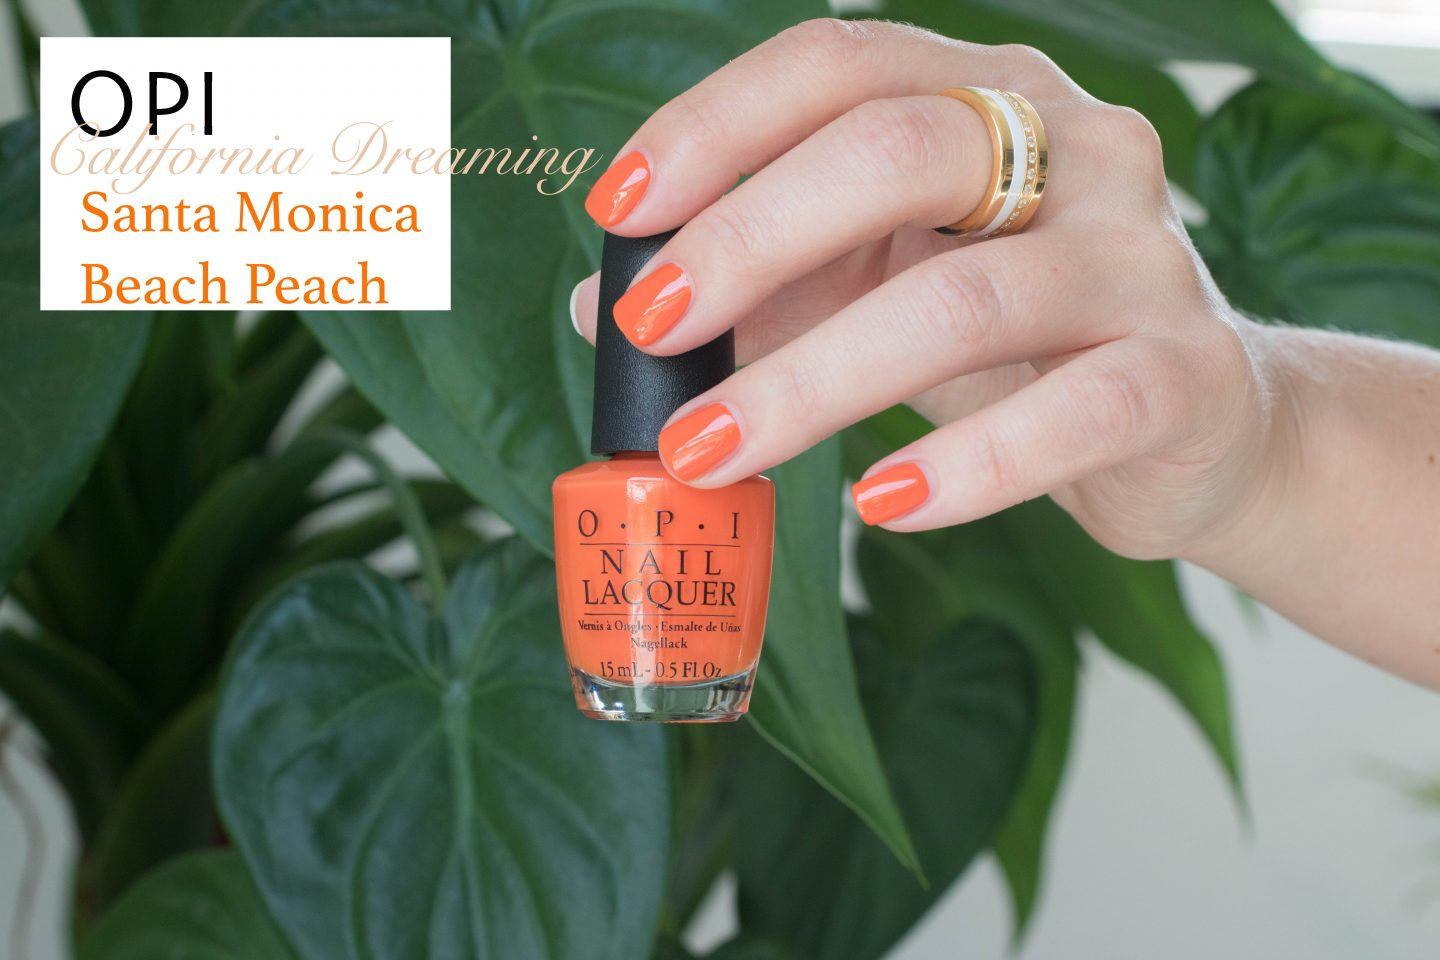 OPI California Dreaming Santa Monica Beach Peach